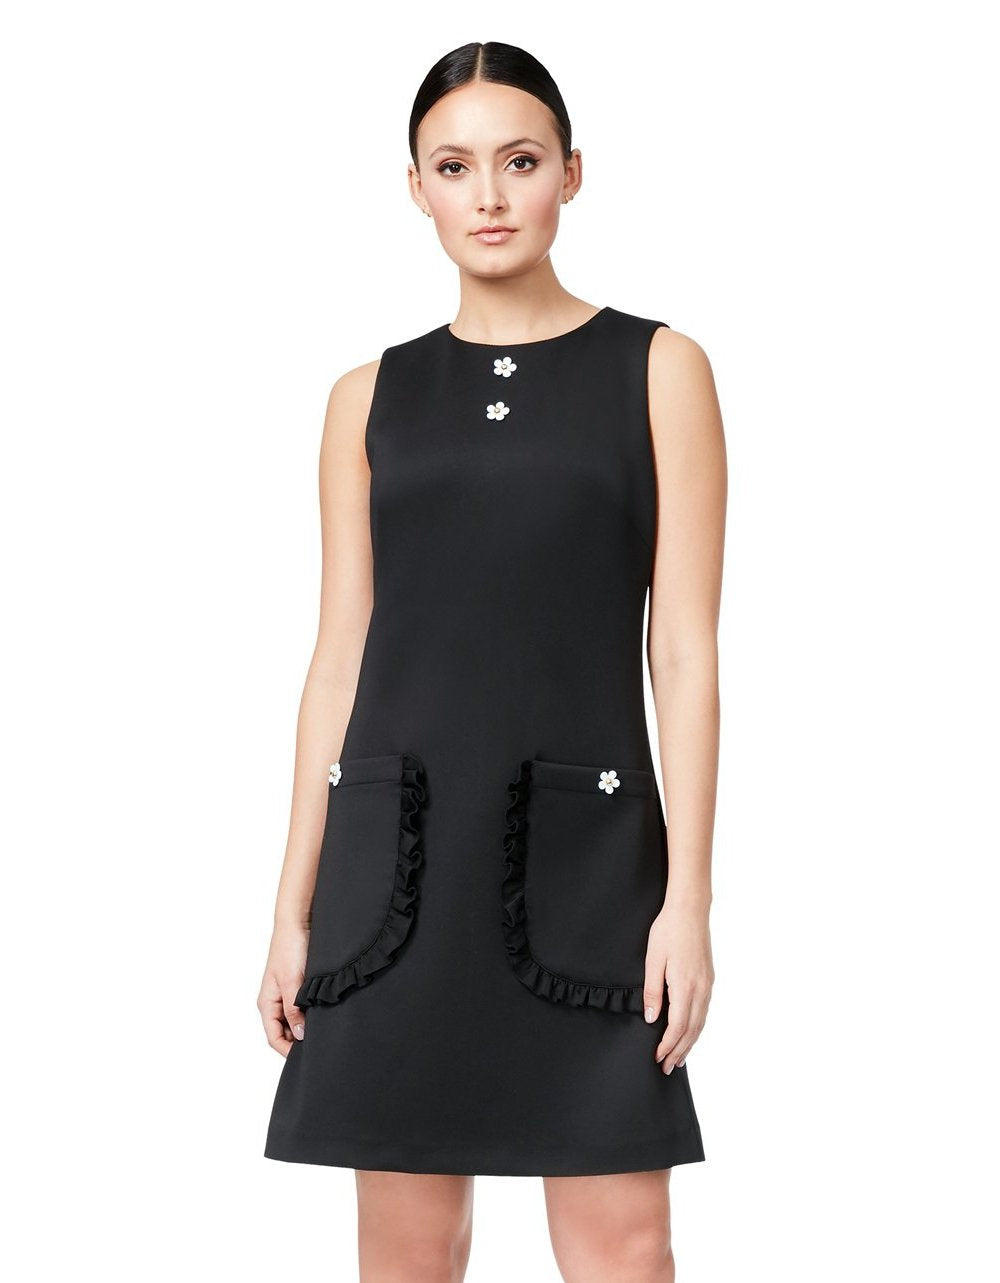 TOTALLY TECHNO DRESS WITH POCKETS BLACK - APPAREL - Betsey Johnson